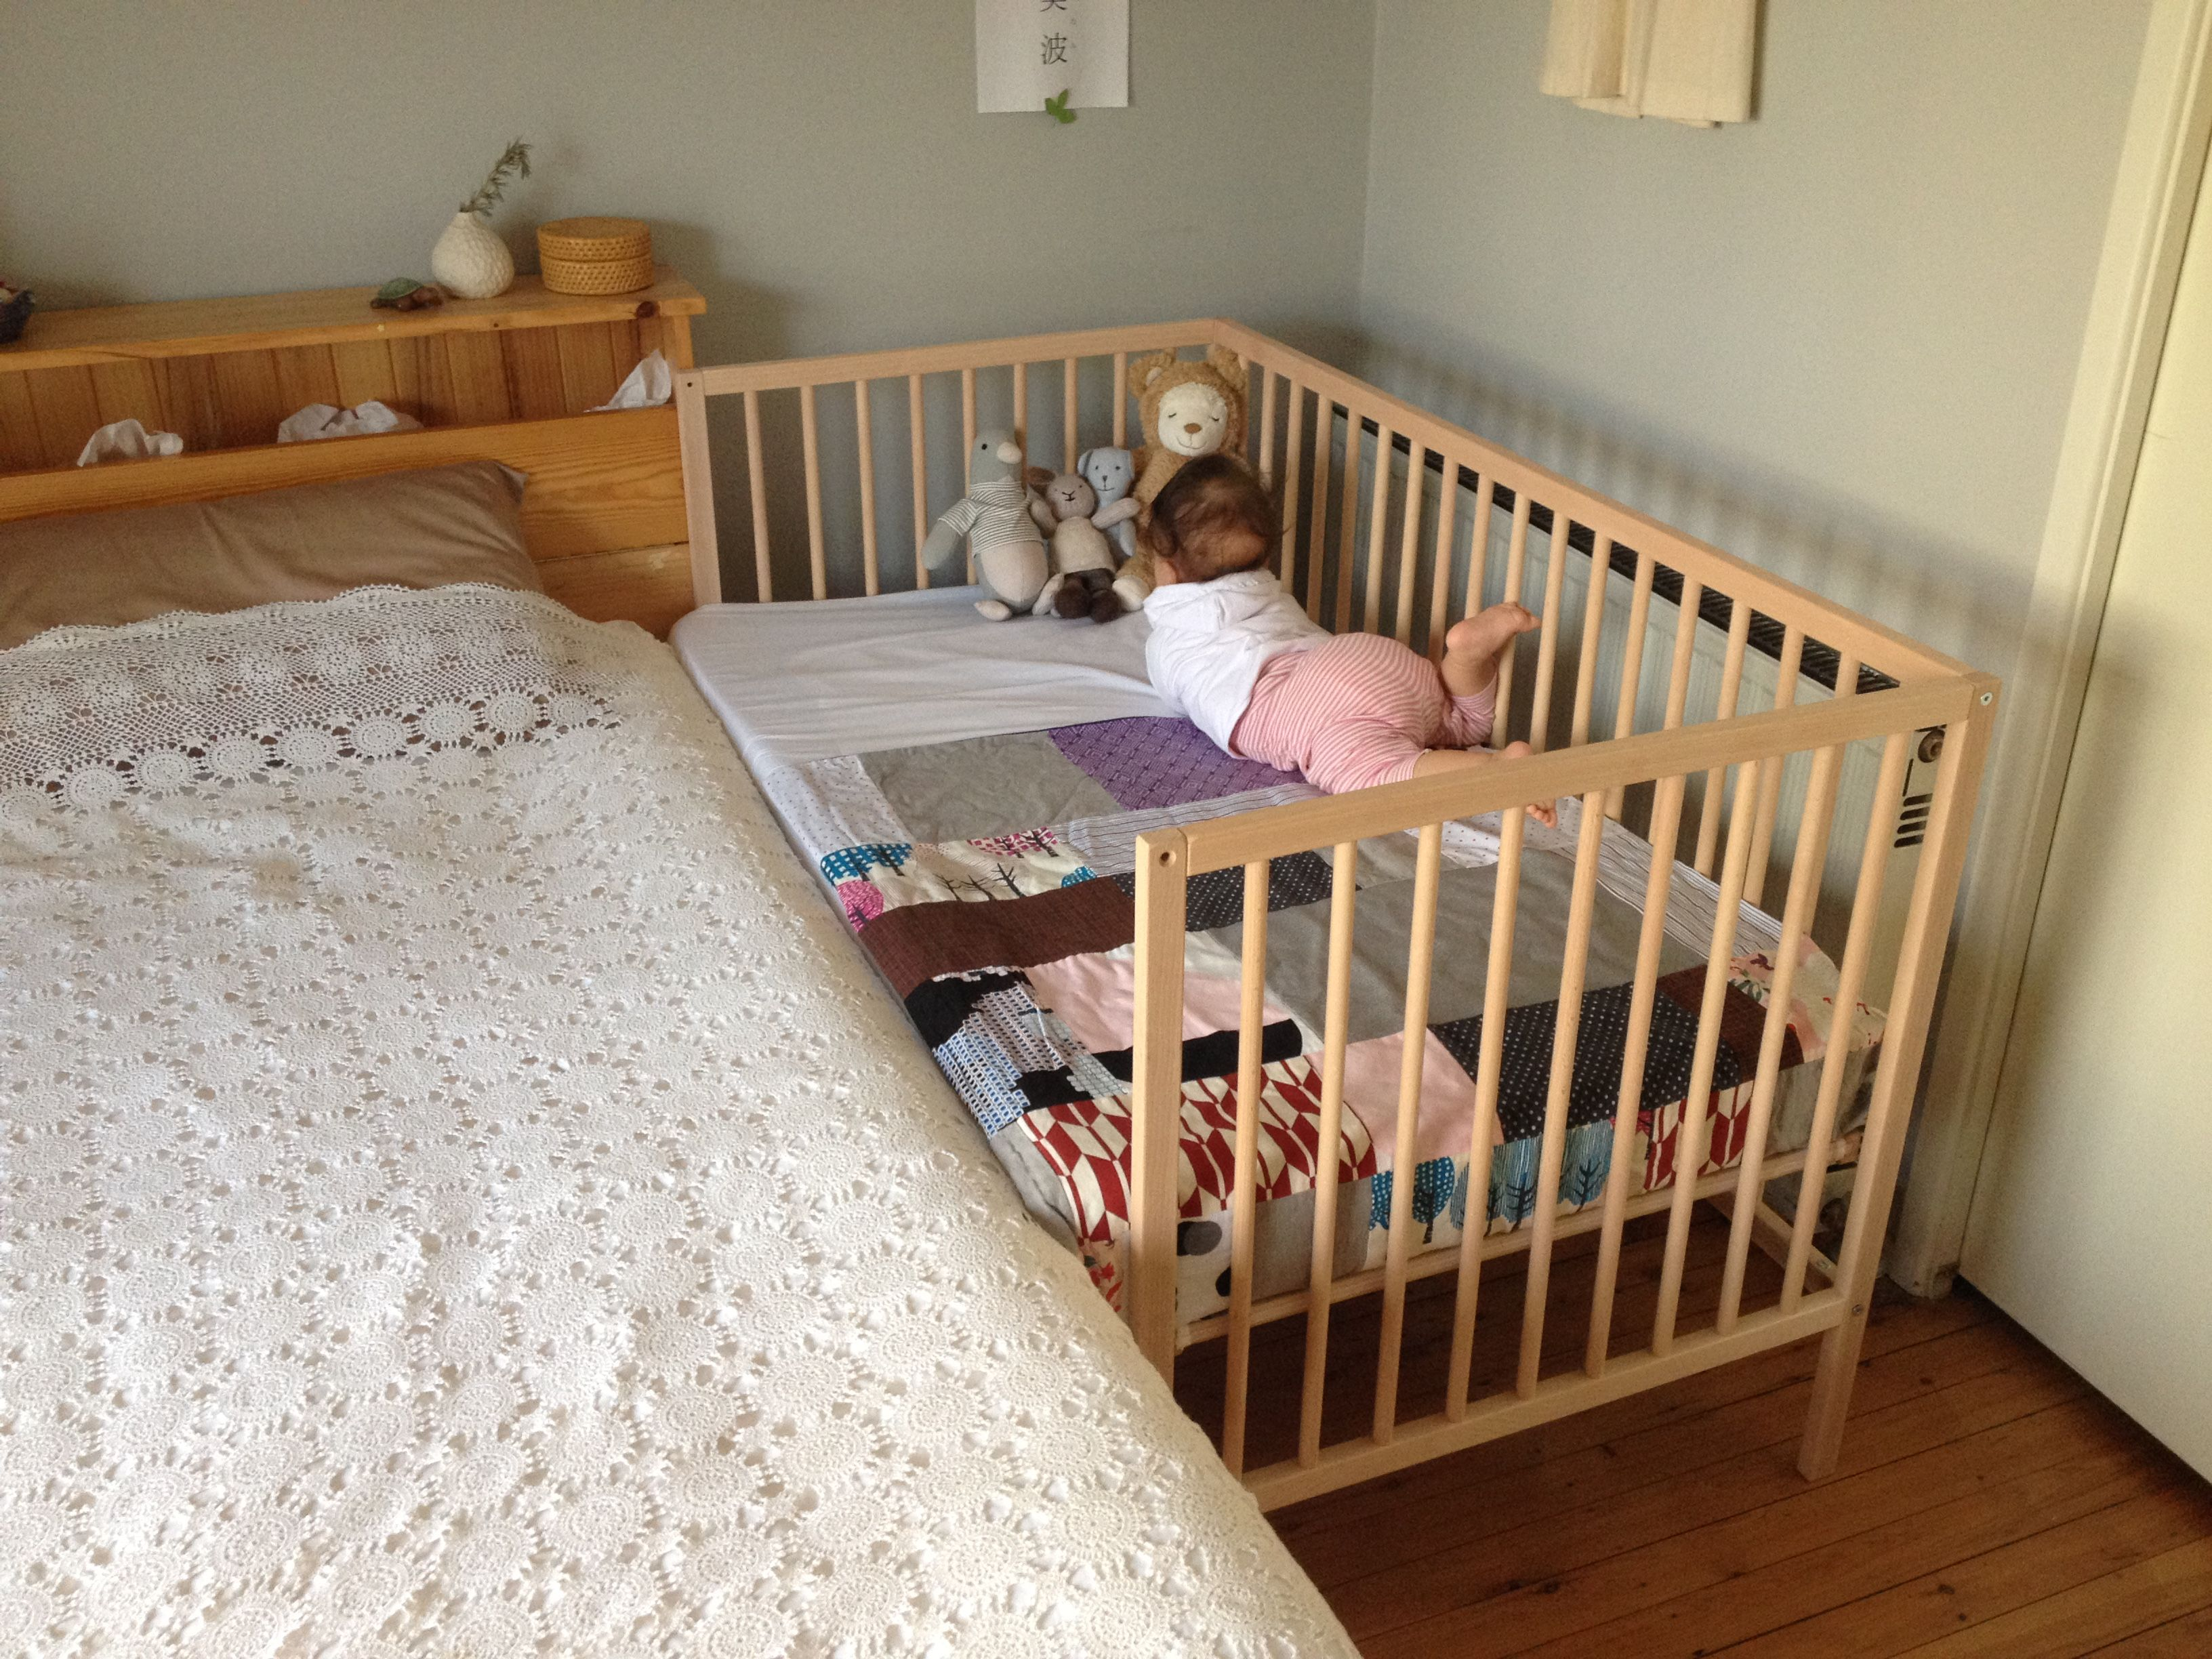 Baby bed co sleeper - The First Years Close And Secure Sleeper Review 2015 Baby Co Sleeper Cots And Cribs